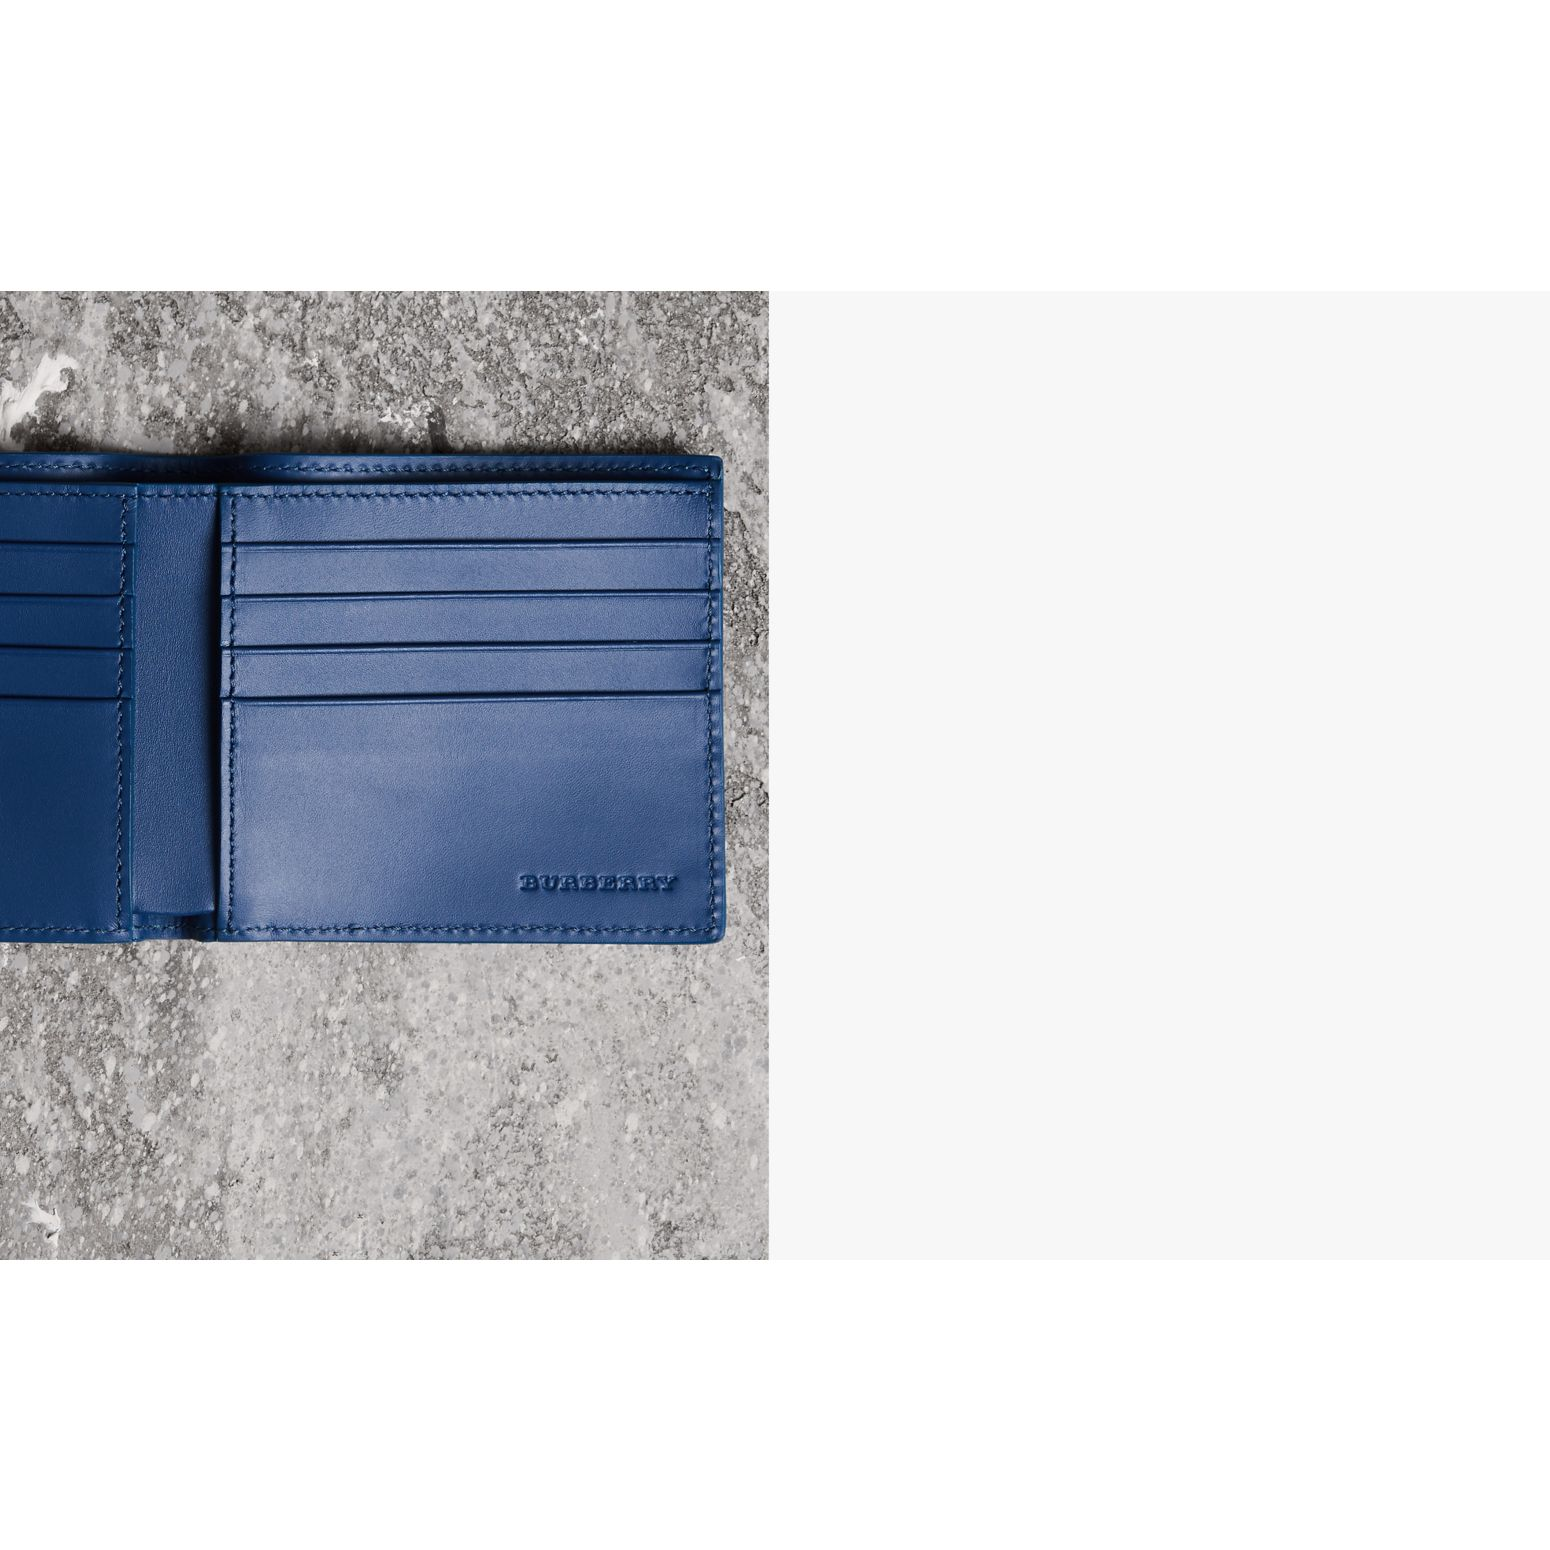 Grainy Leather International Bifold Wallet in Bright Ultramarine - Men | Burberry Canada - gallery image 1